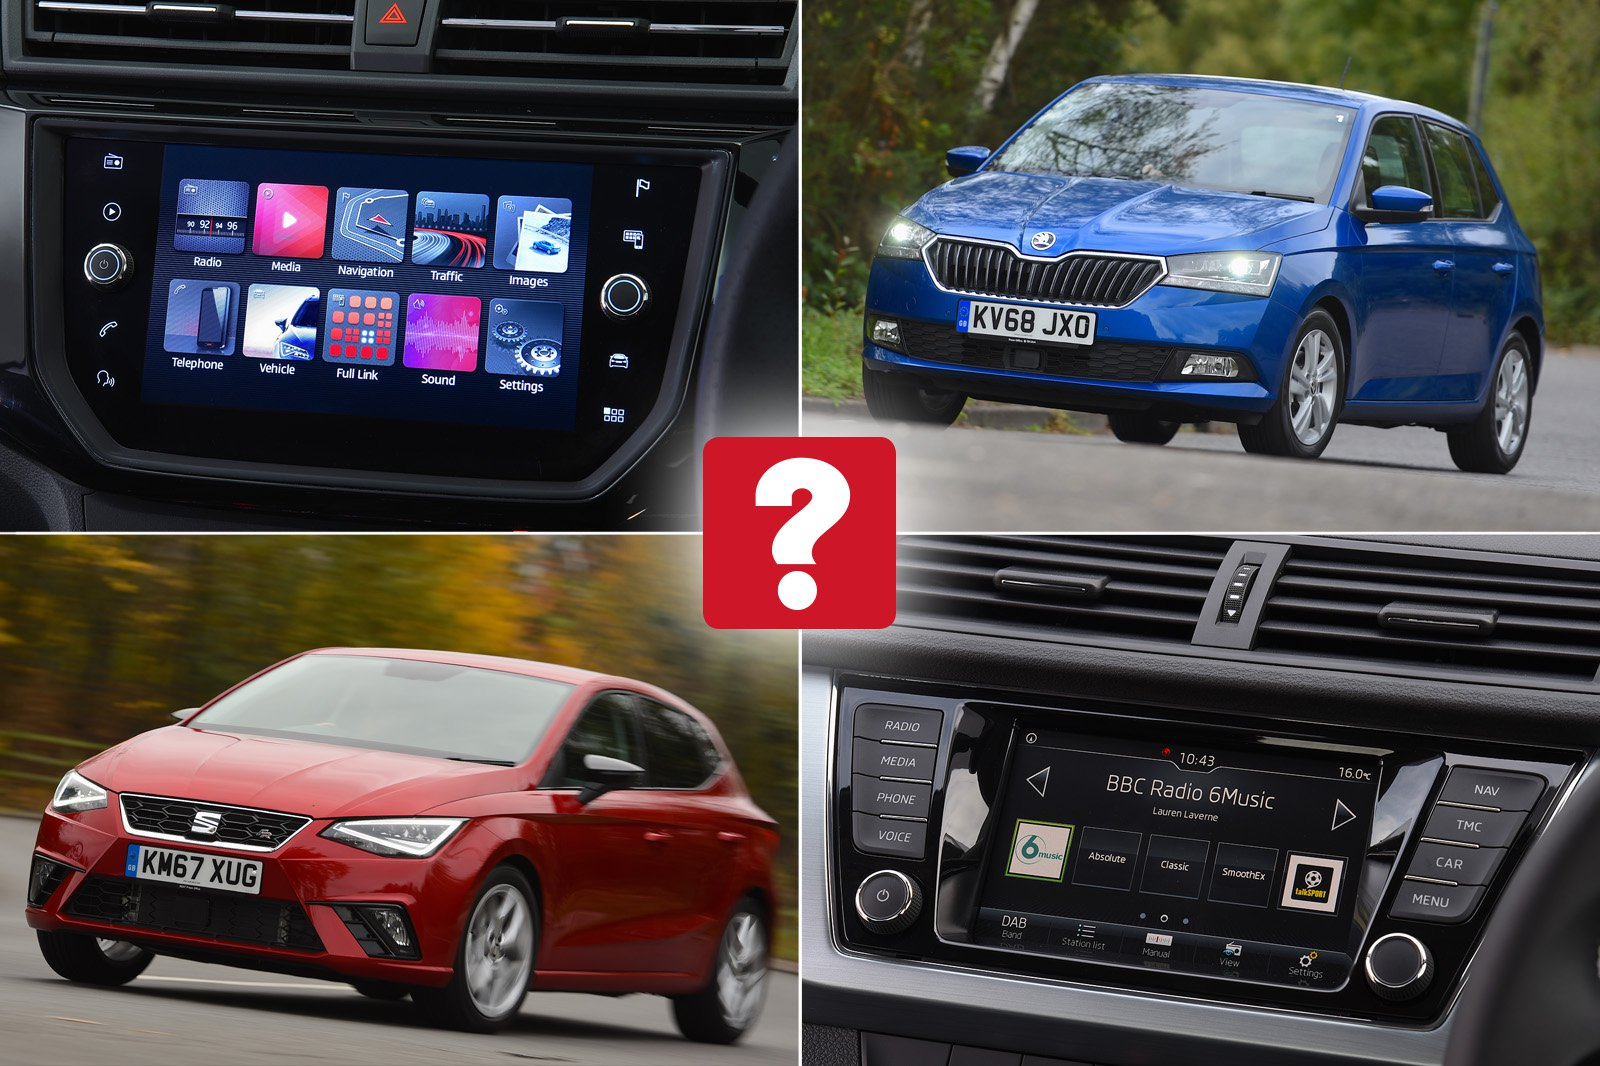 New Skoda Fabia vs used Seat Ibiza: which is best?